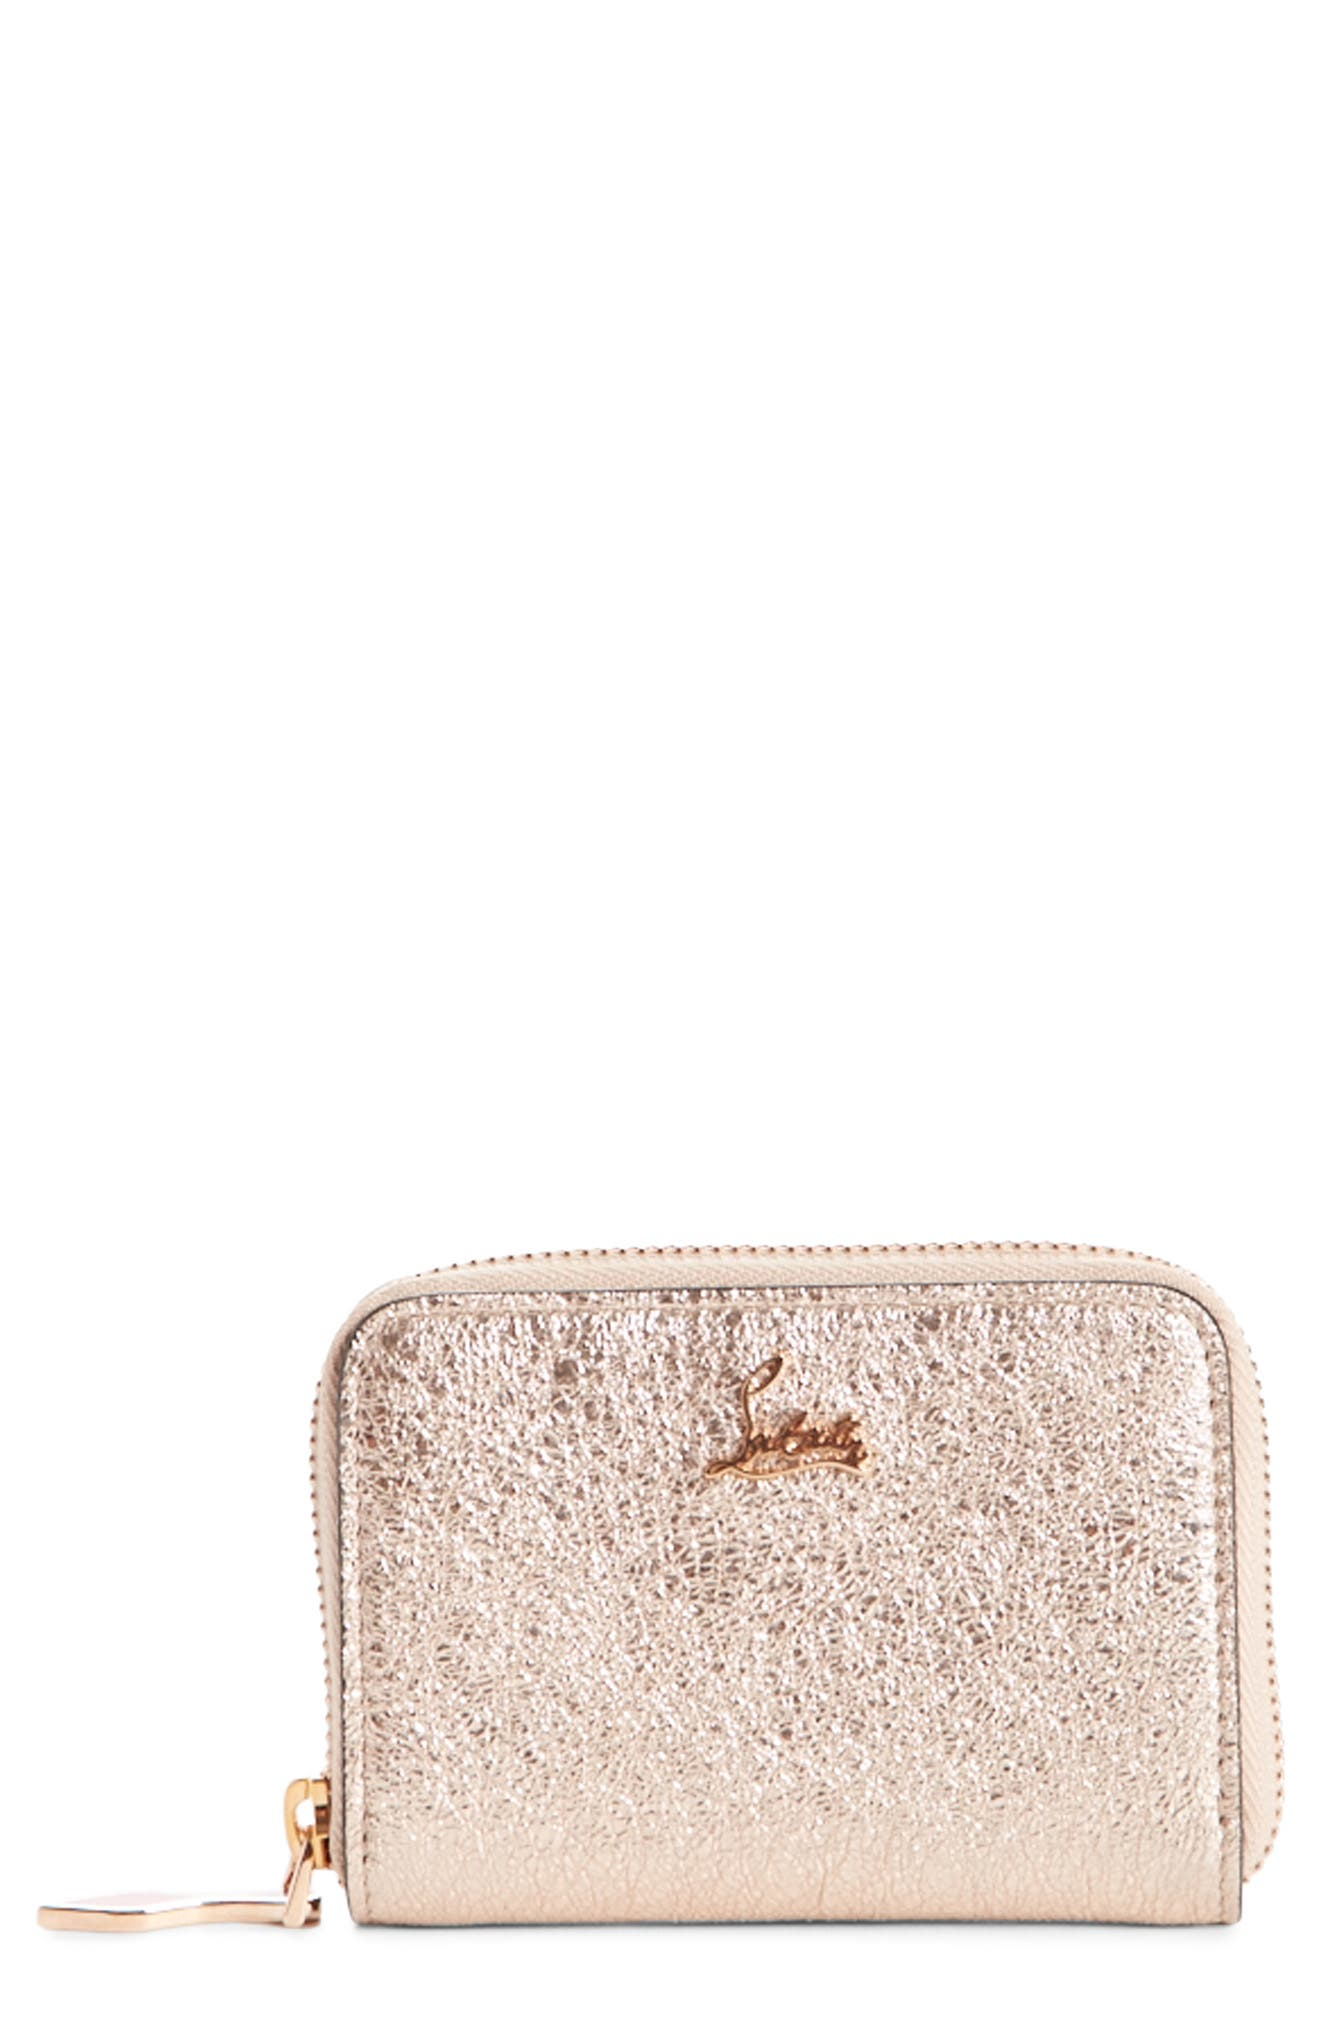 Panettone Leather Coin Purse,                         Main,                         color, Rose Gold/ Rose Gold